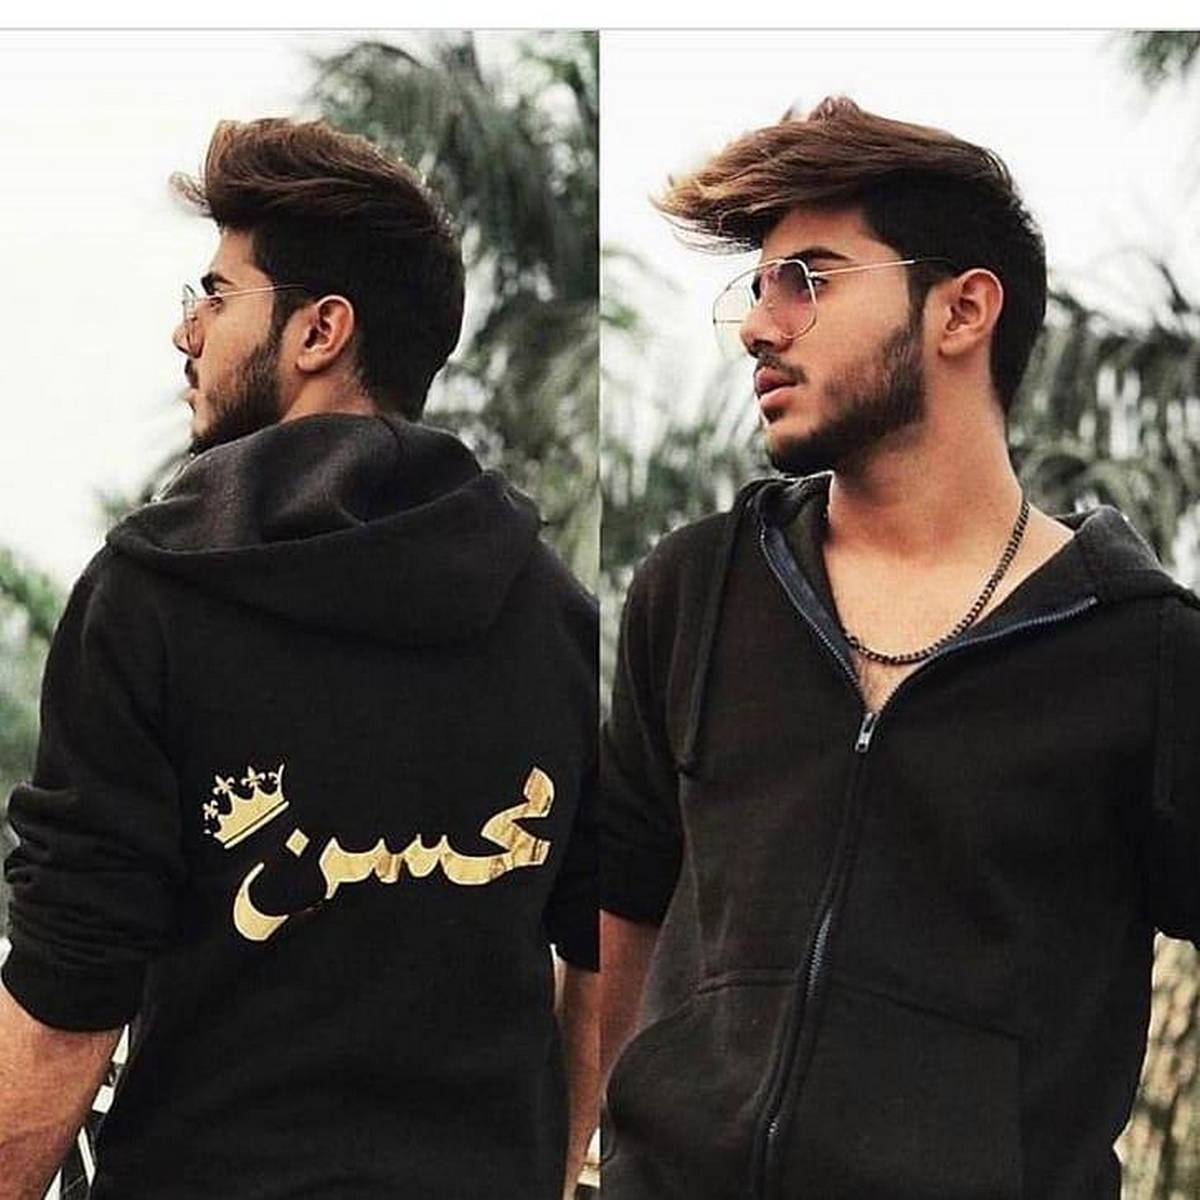 Product details of Customized Hoodie with Name in Golden for Men and Girls